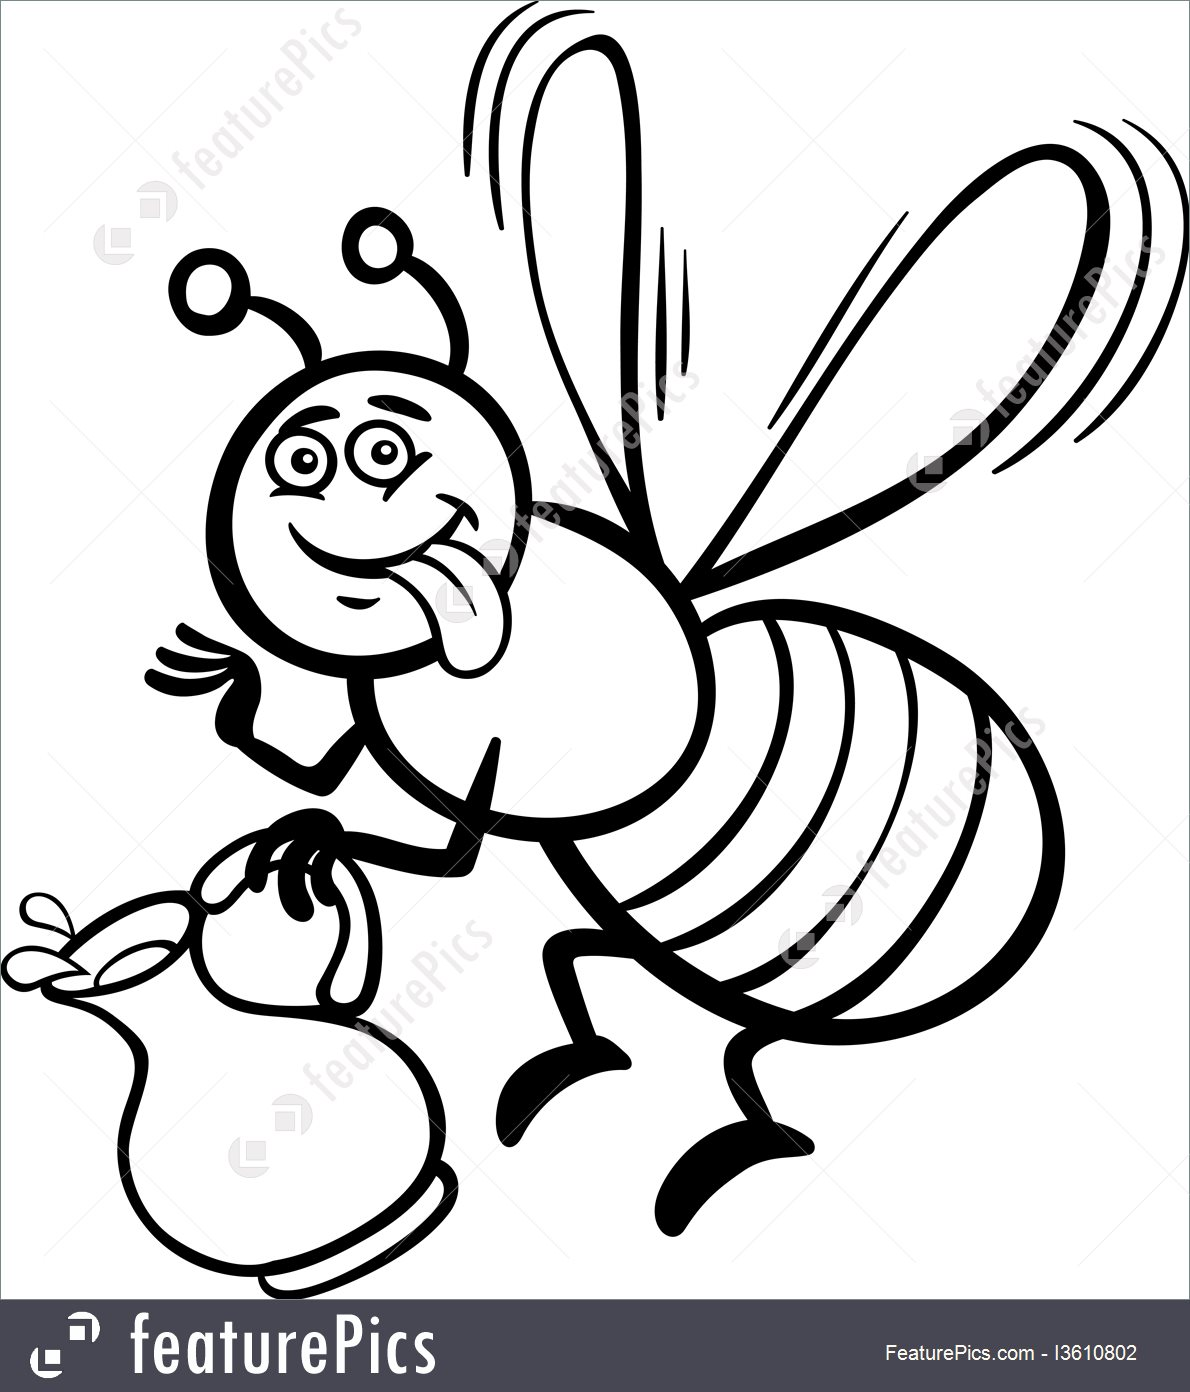 1190x1392 Honey Bee Cartoon For Coloring Book Illustration